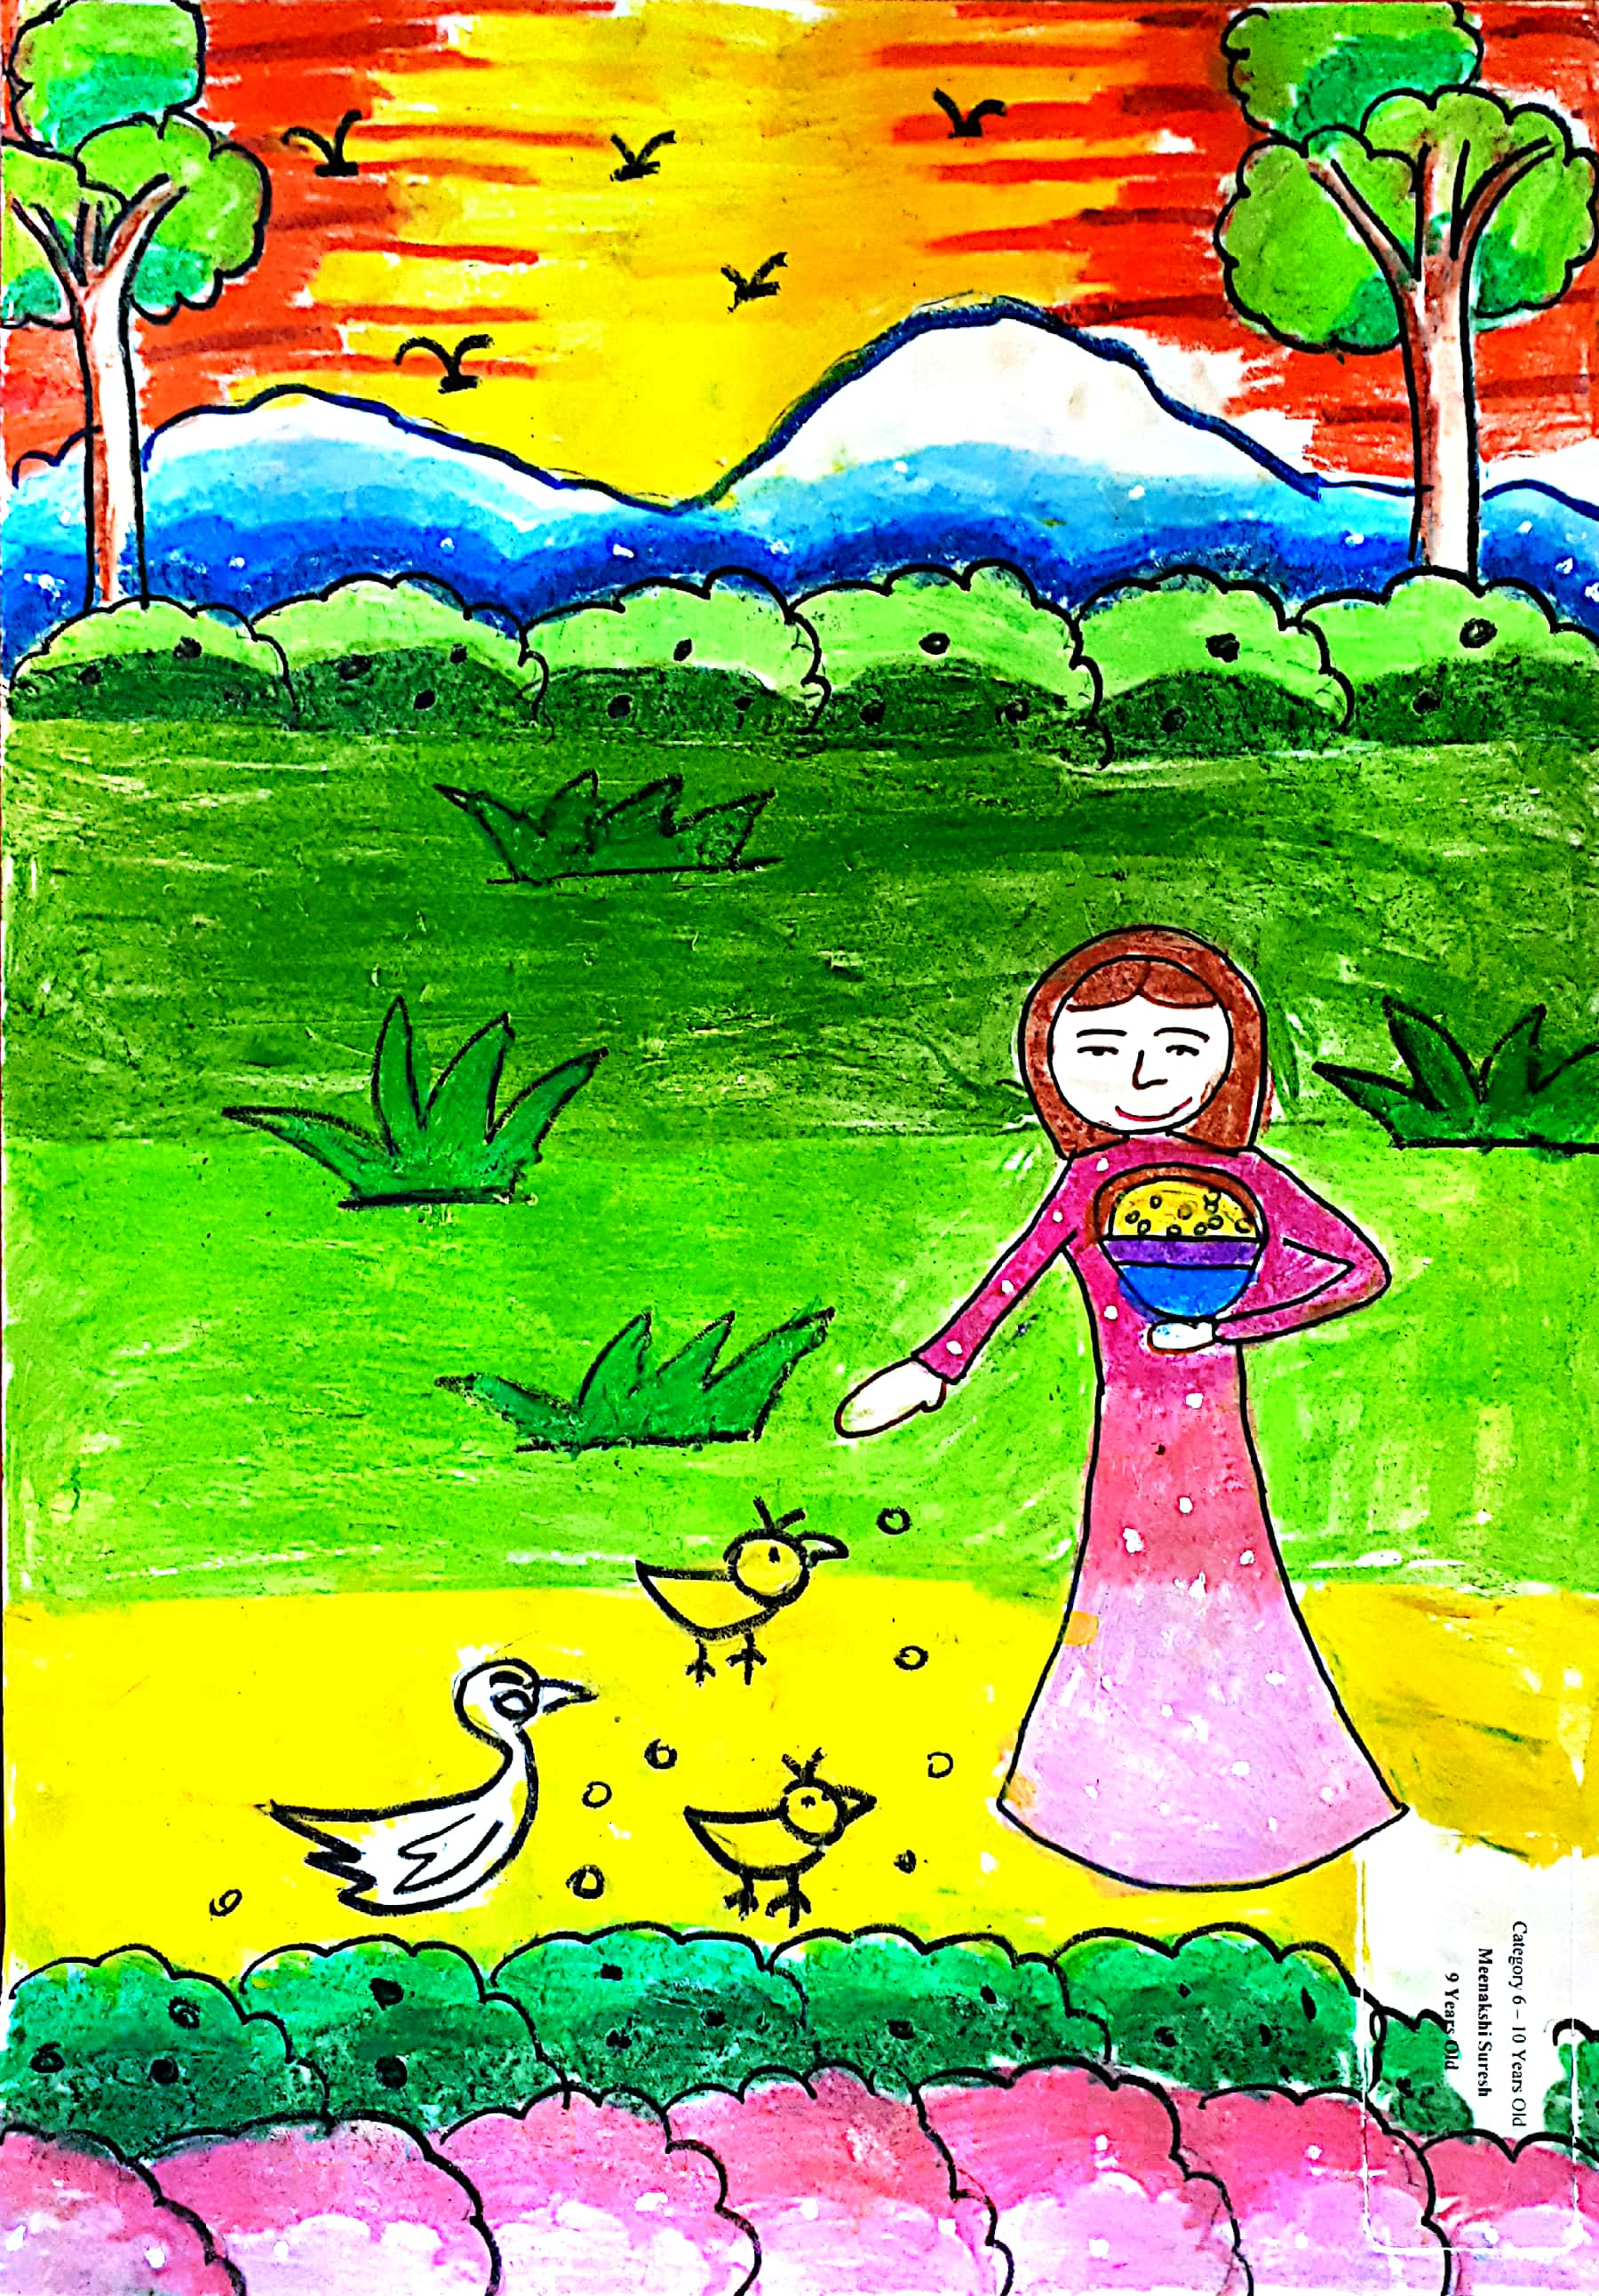 Second Prize: Meenakshi Suresh - 9 Years Old